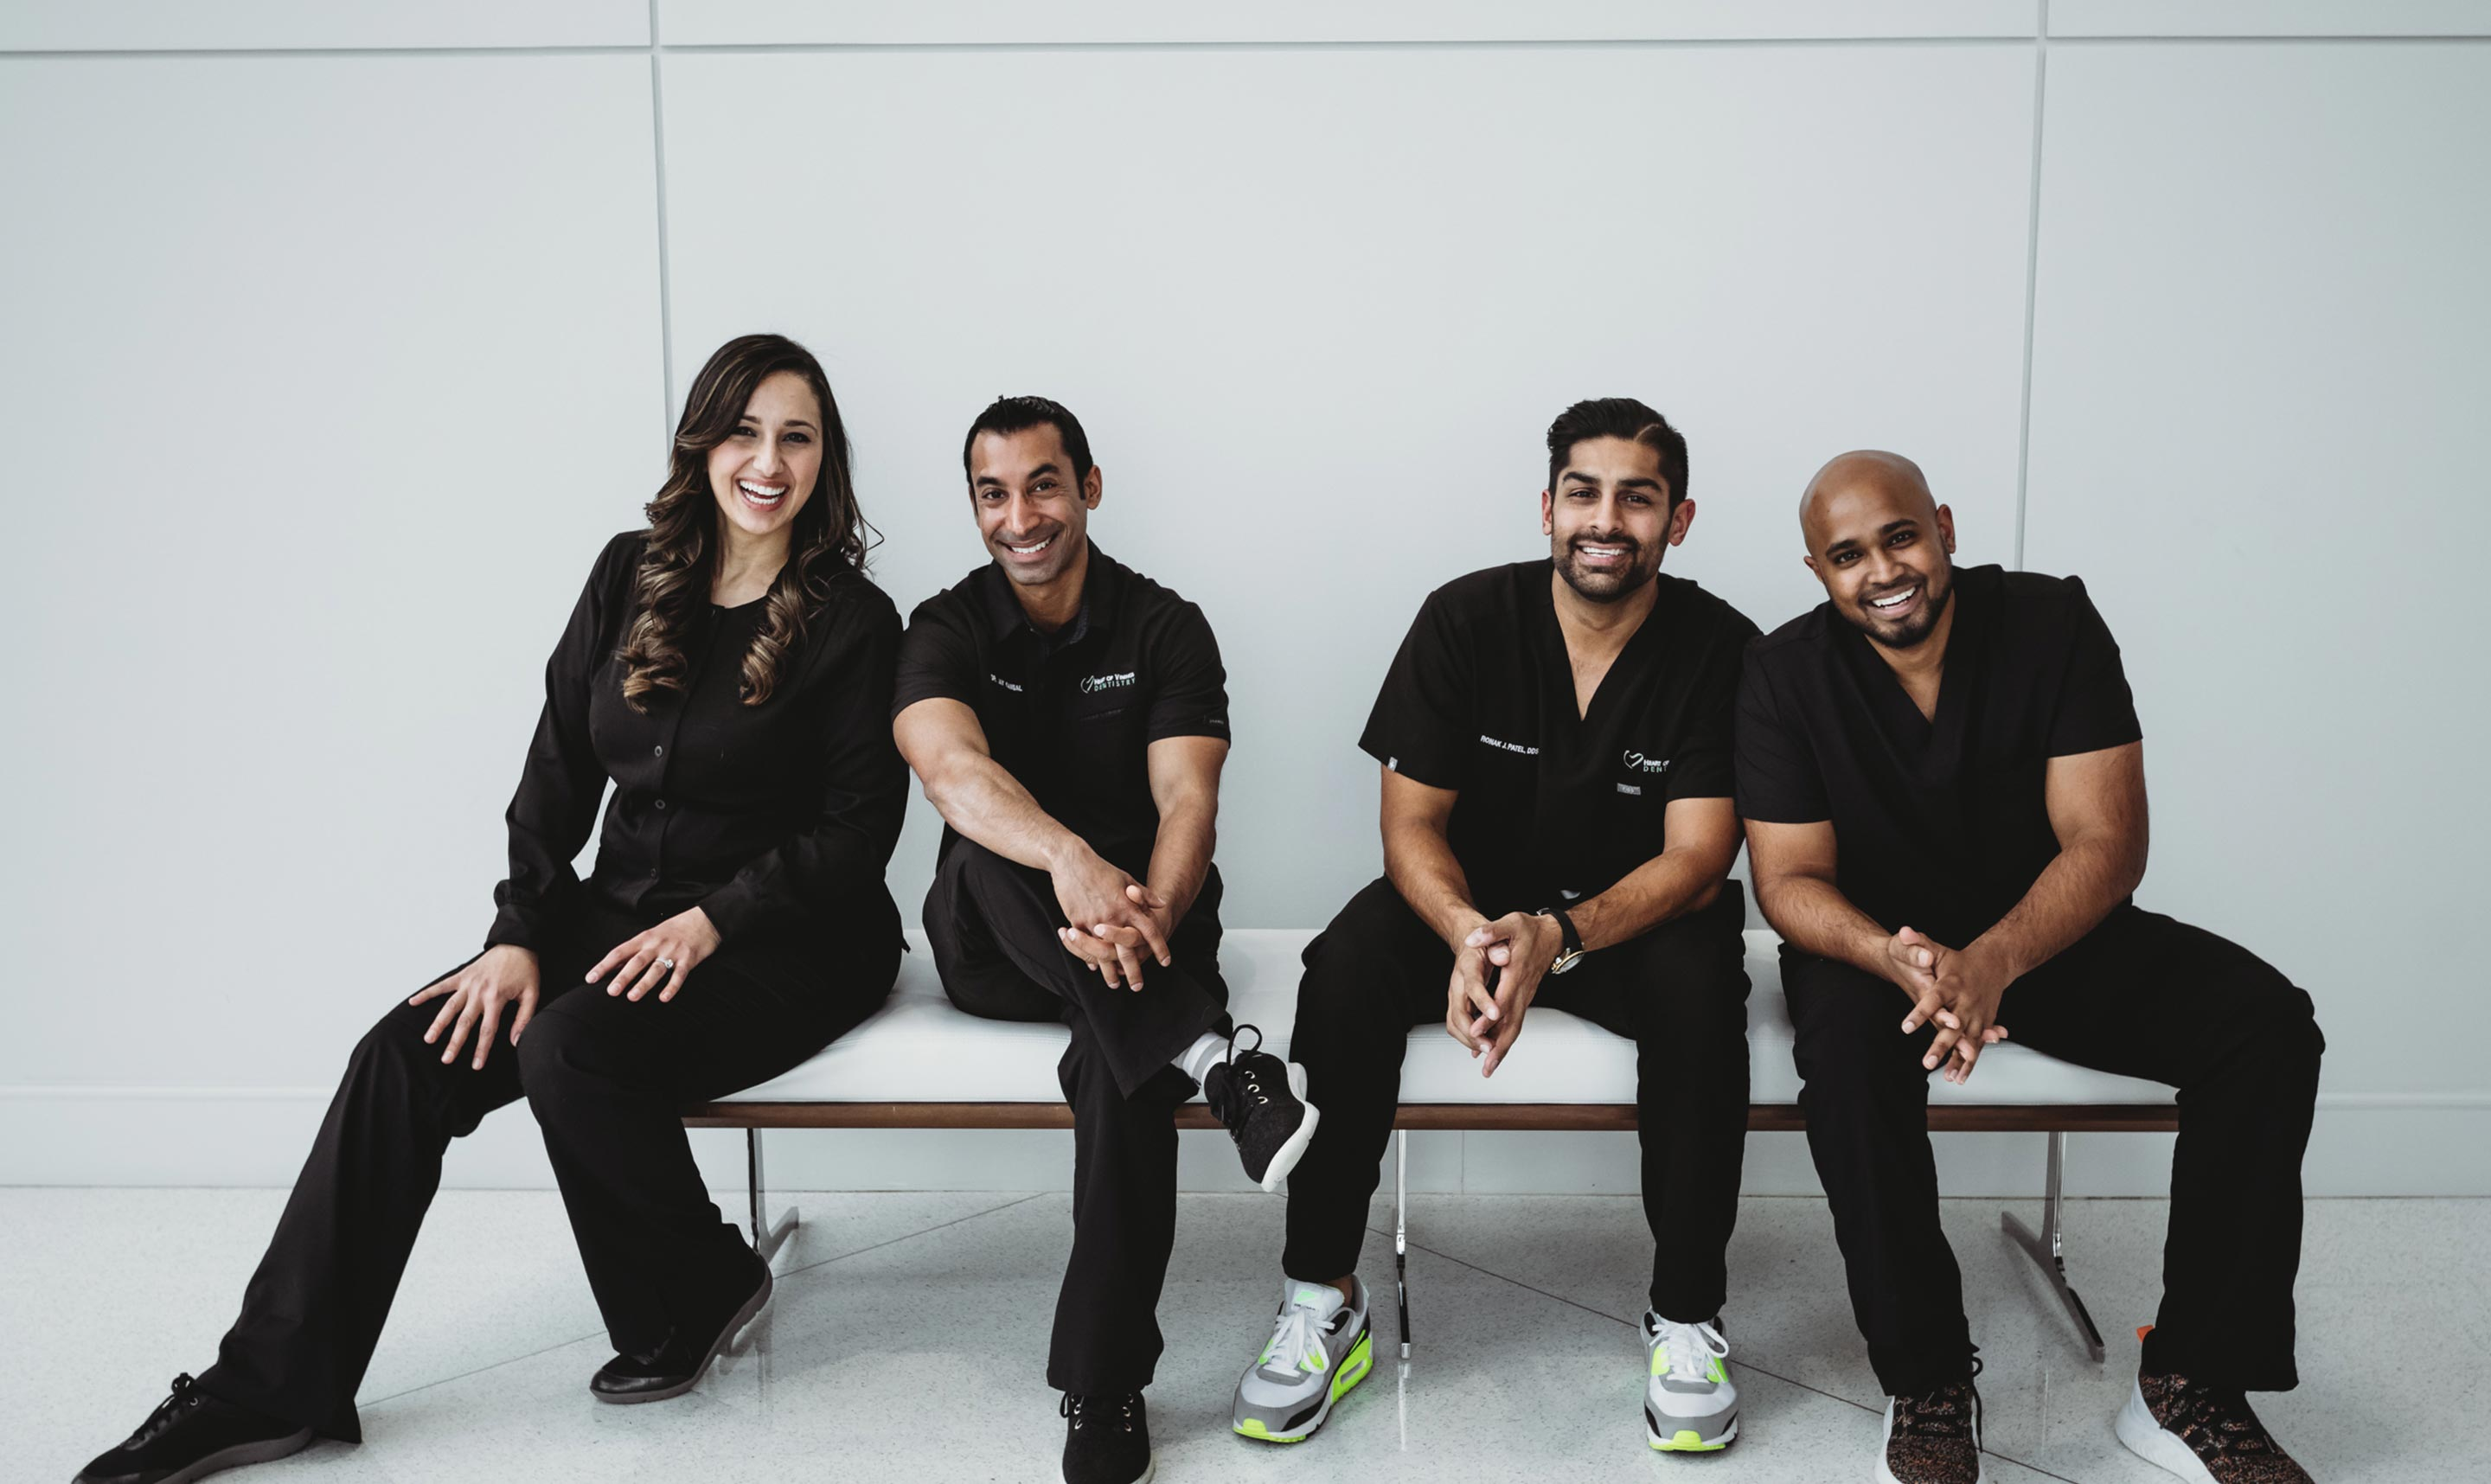 Photo Dr. Samira Jafari, Dr. Roonak Patel, Dr. Jay Kansal, and Dr. Mark Persaud sitting on a bench